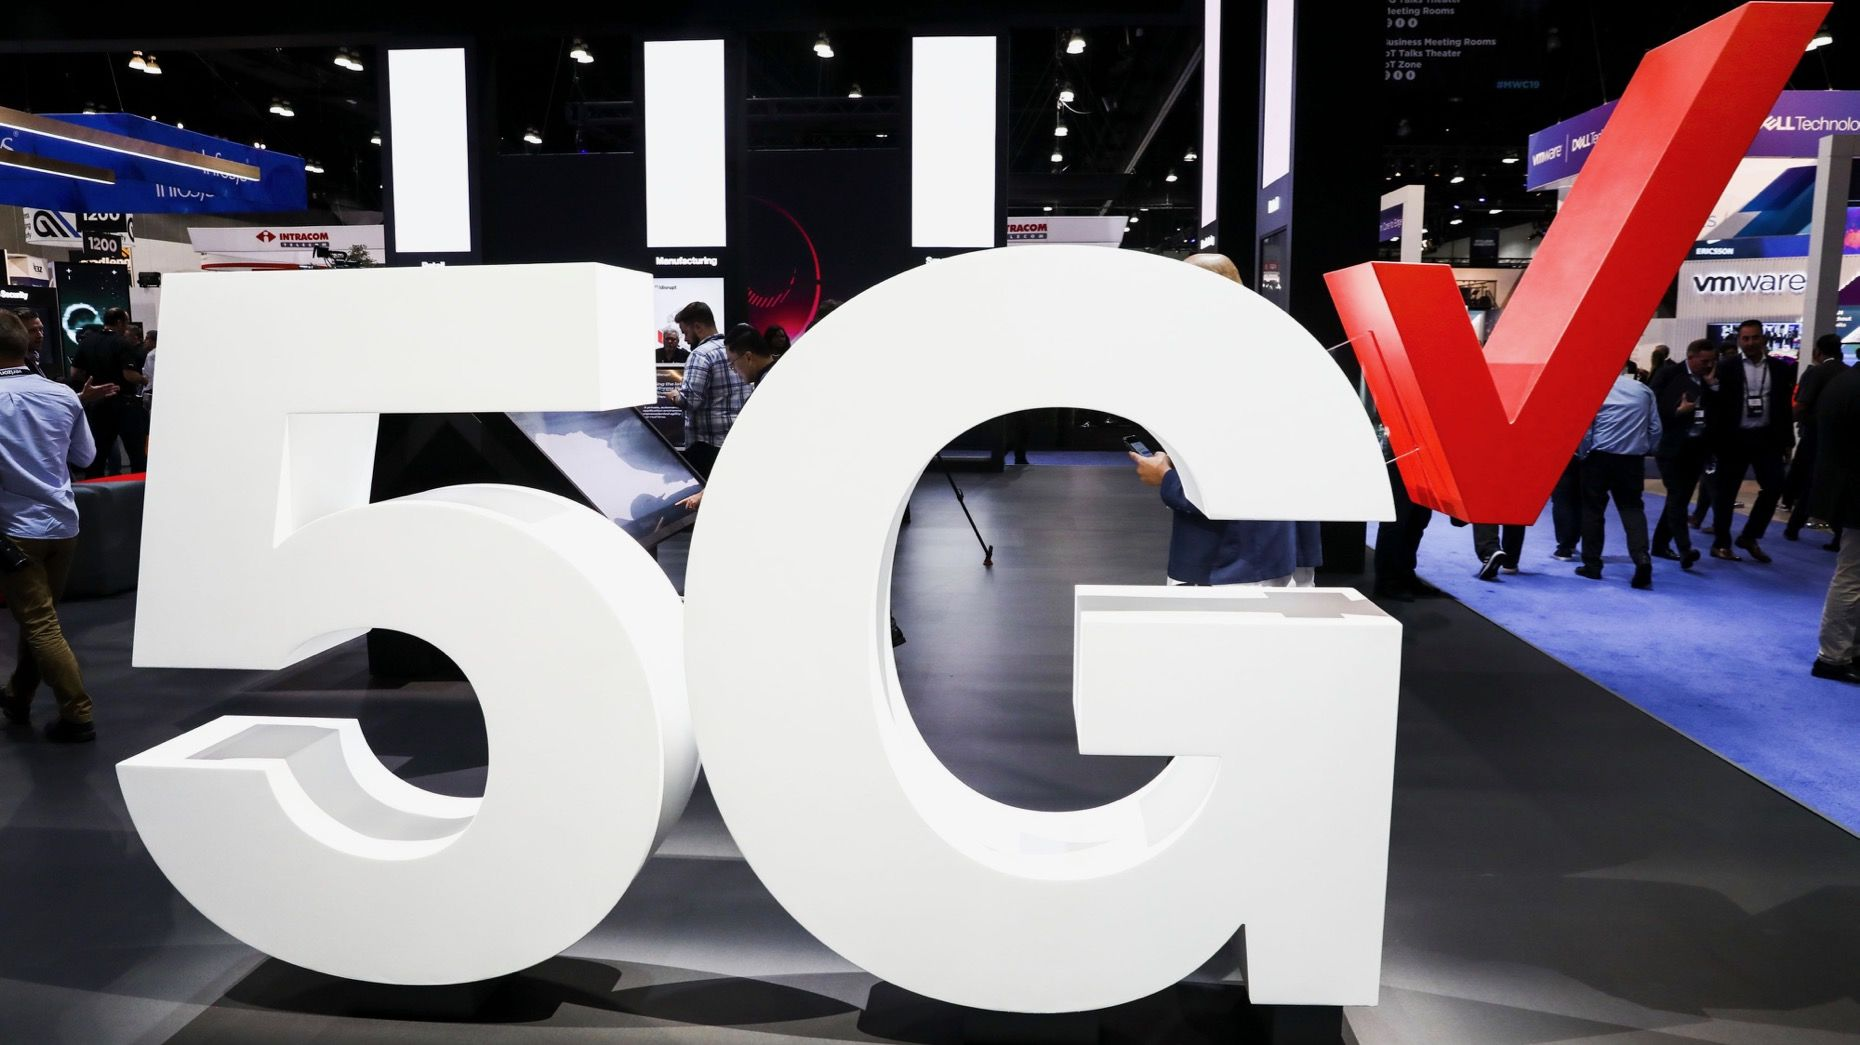 Verizon's 5G wireless signage at the Mobile World Congress Americas event in Los Angeles in October. Photo: Bloomberg